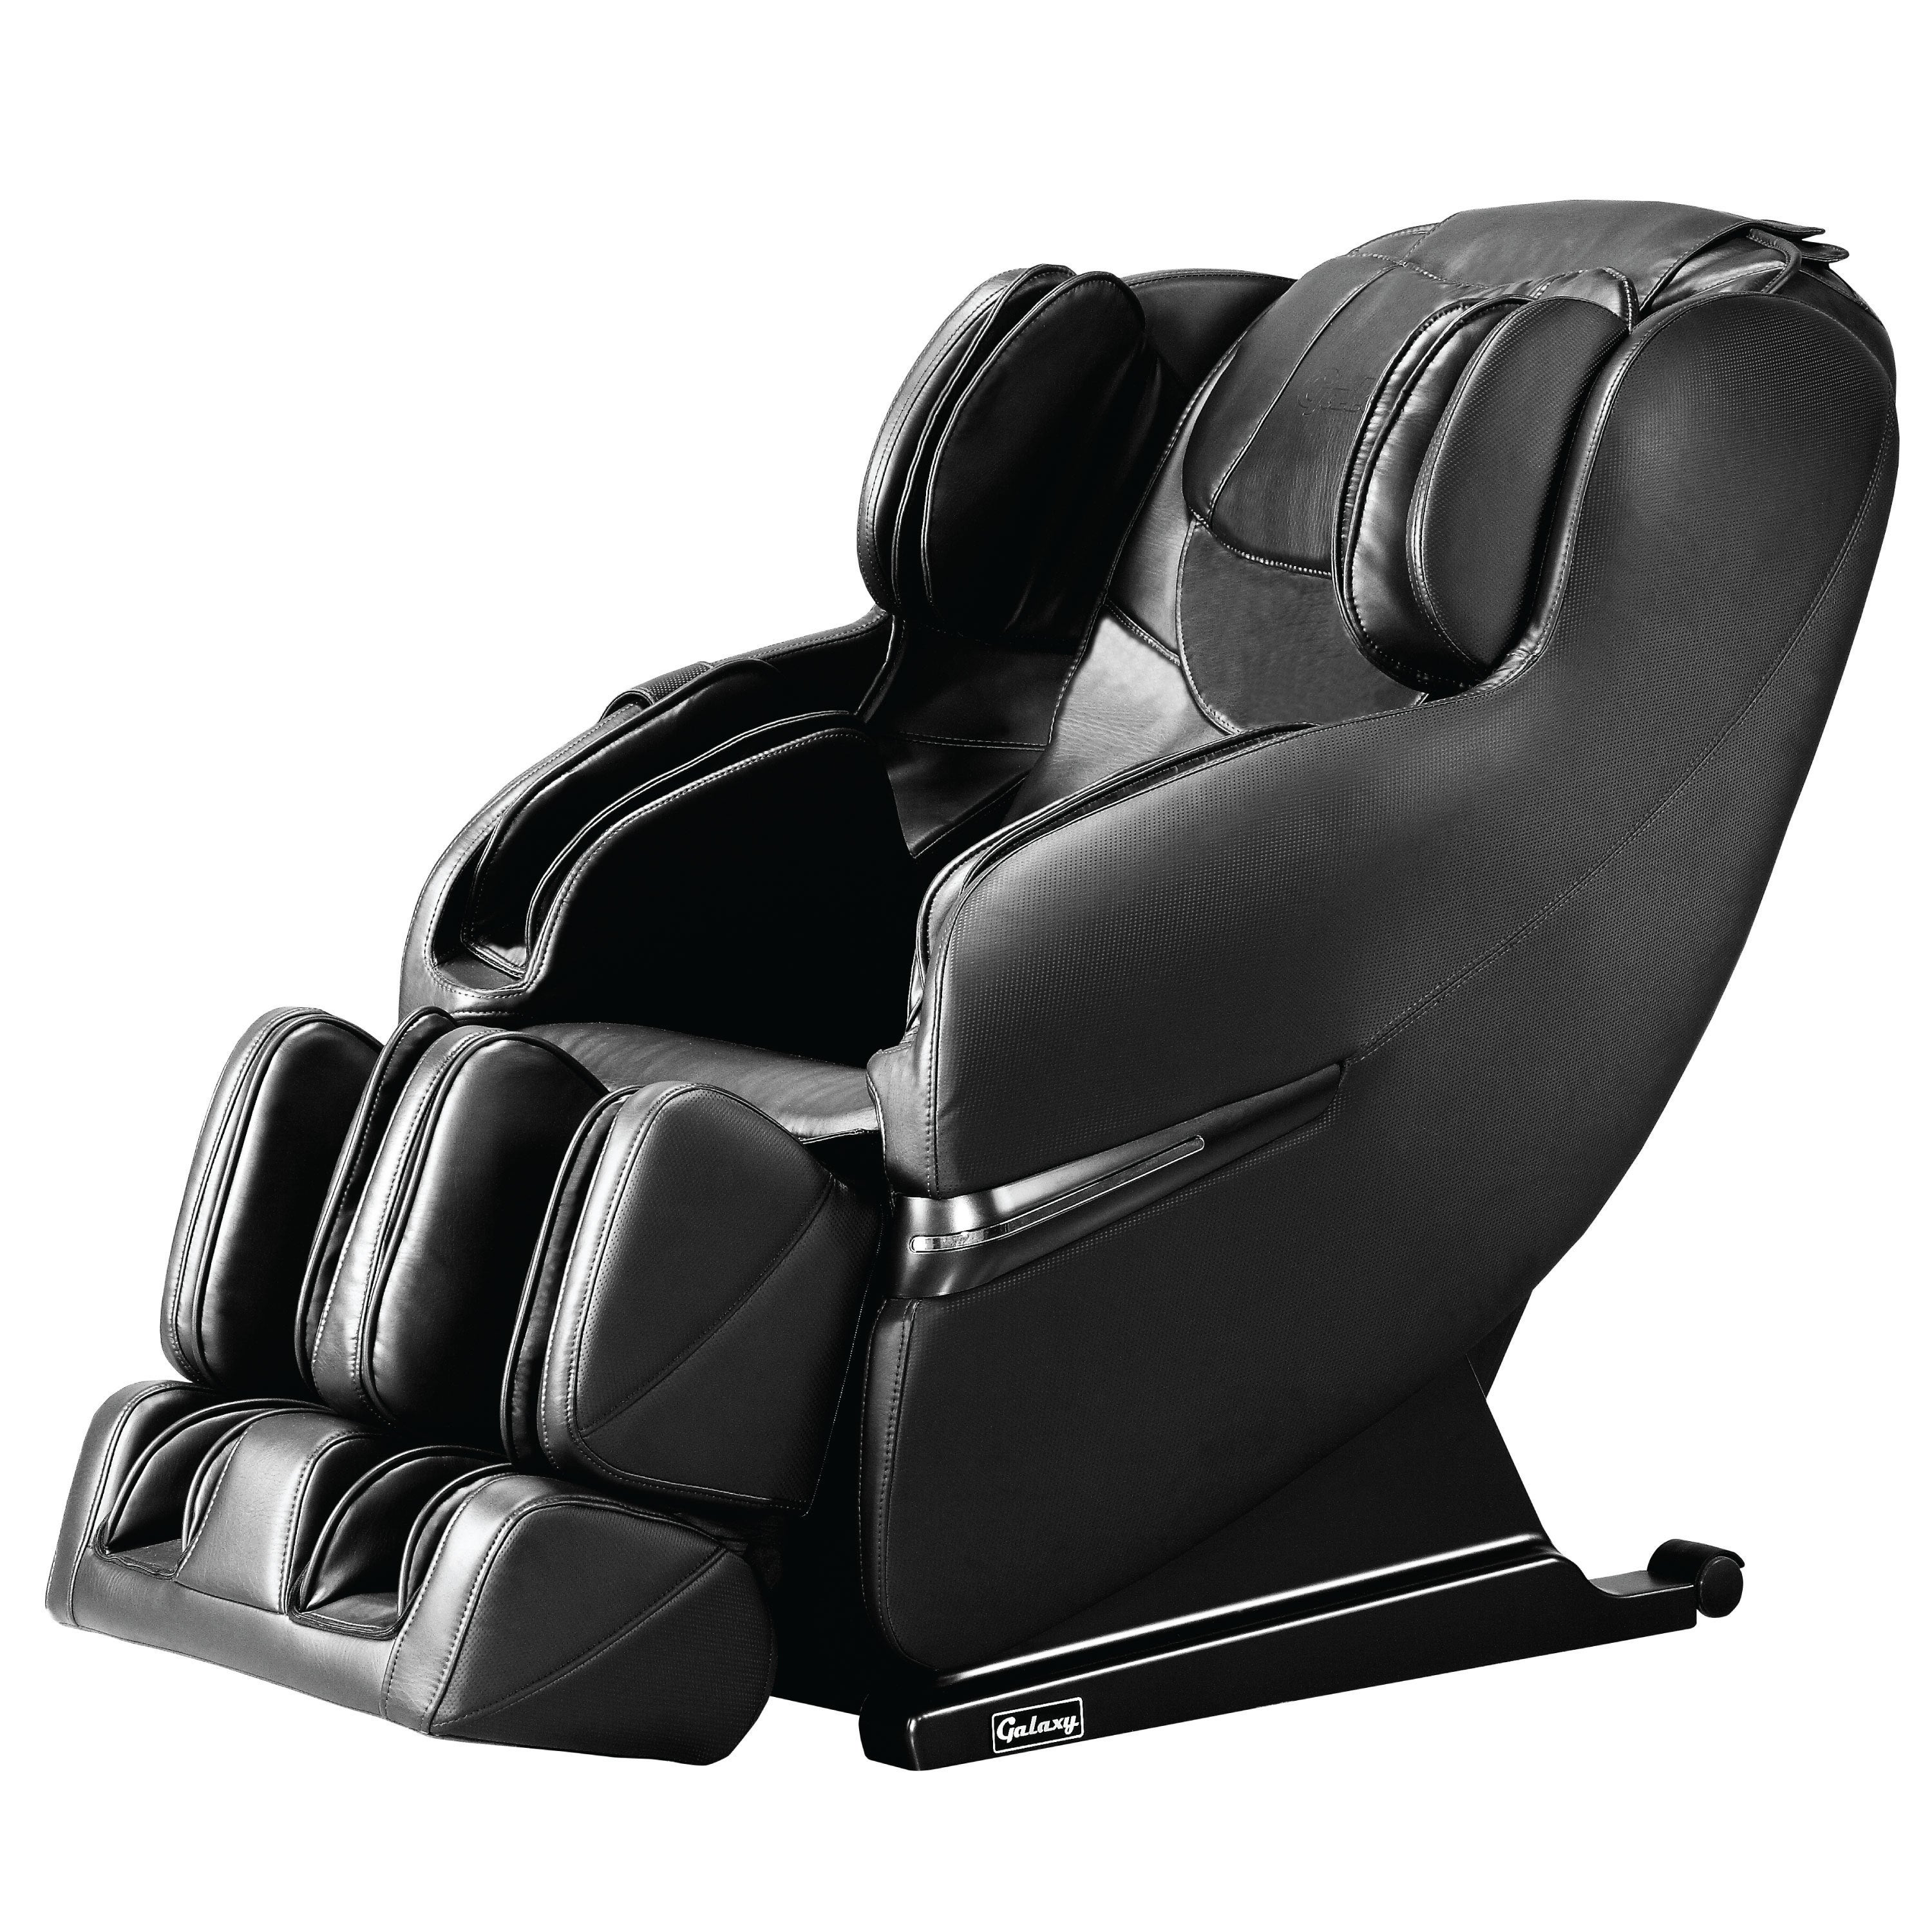 com myhomeproduct best massage review my chair home full unique cost product body